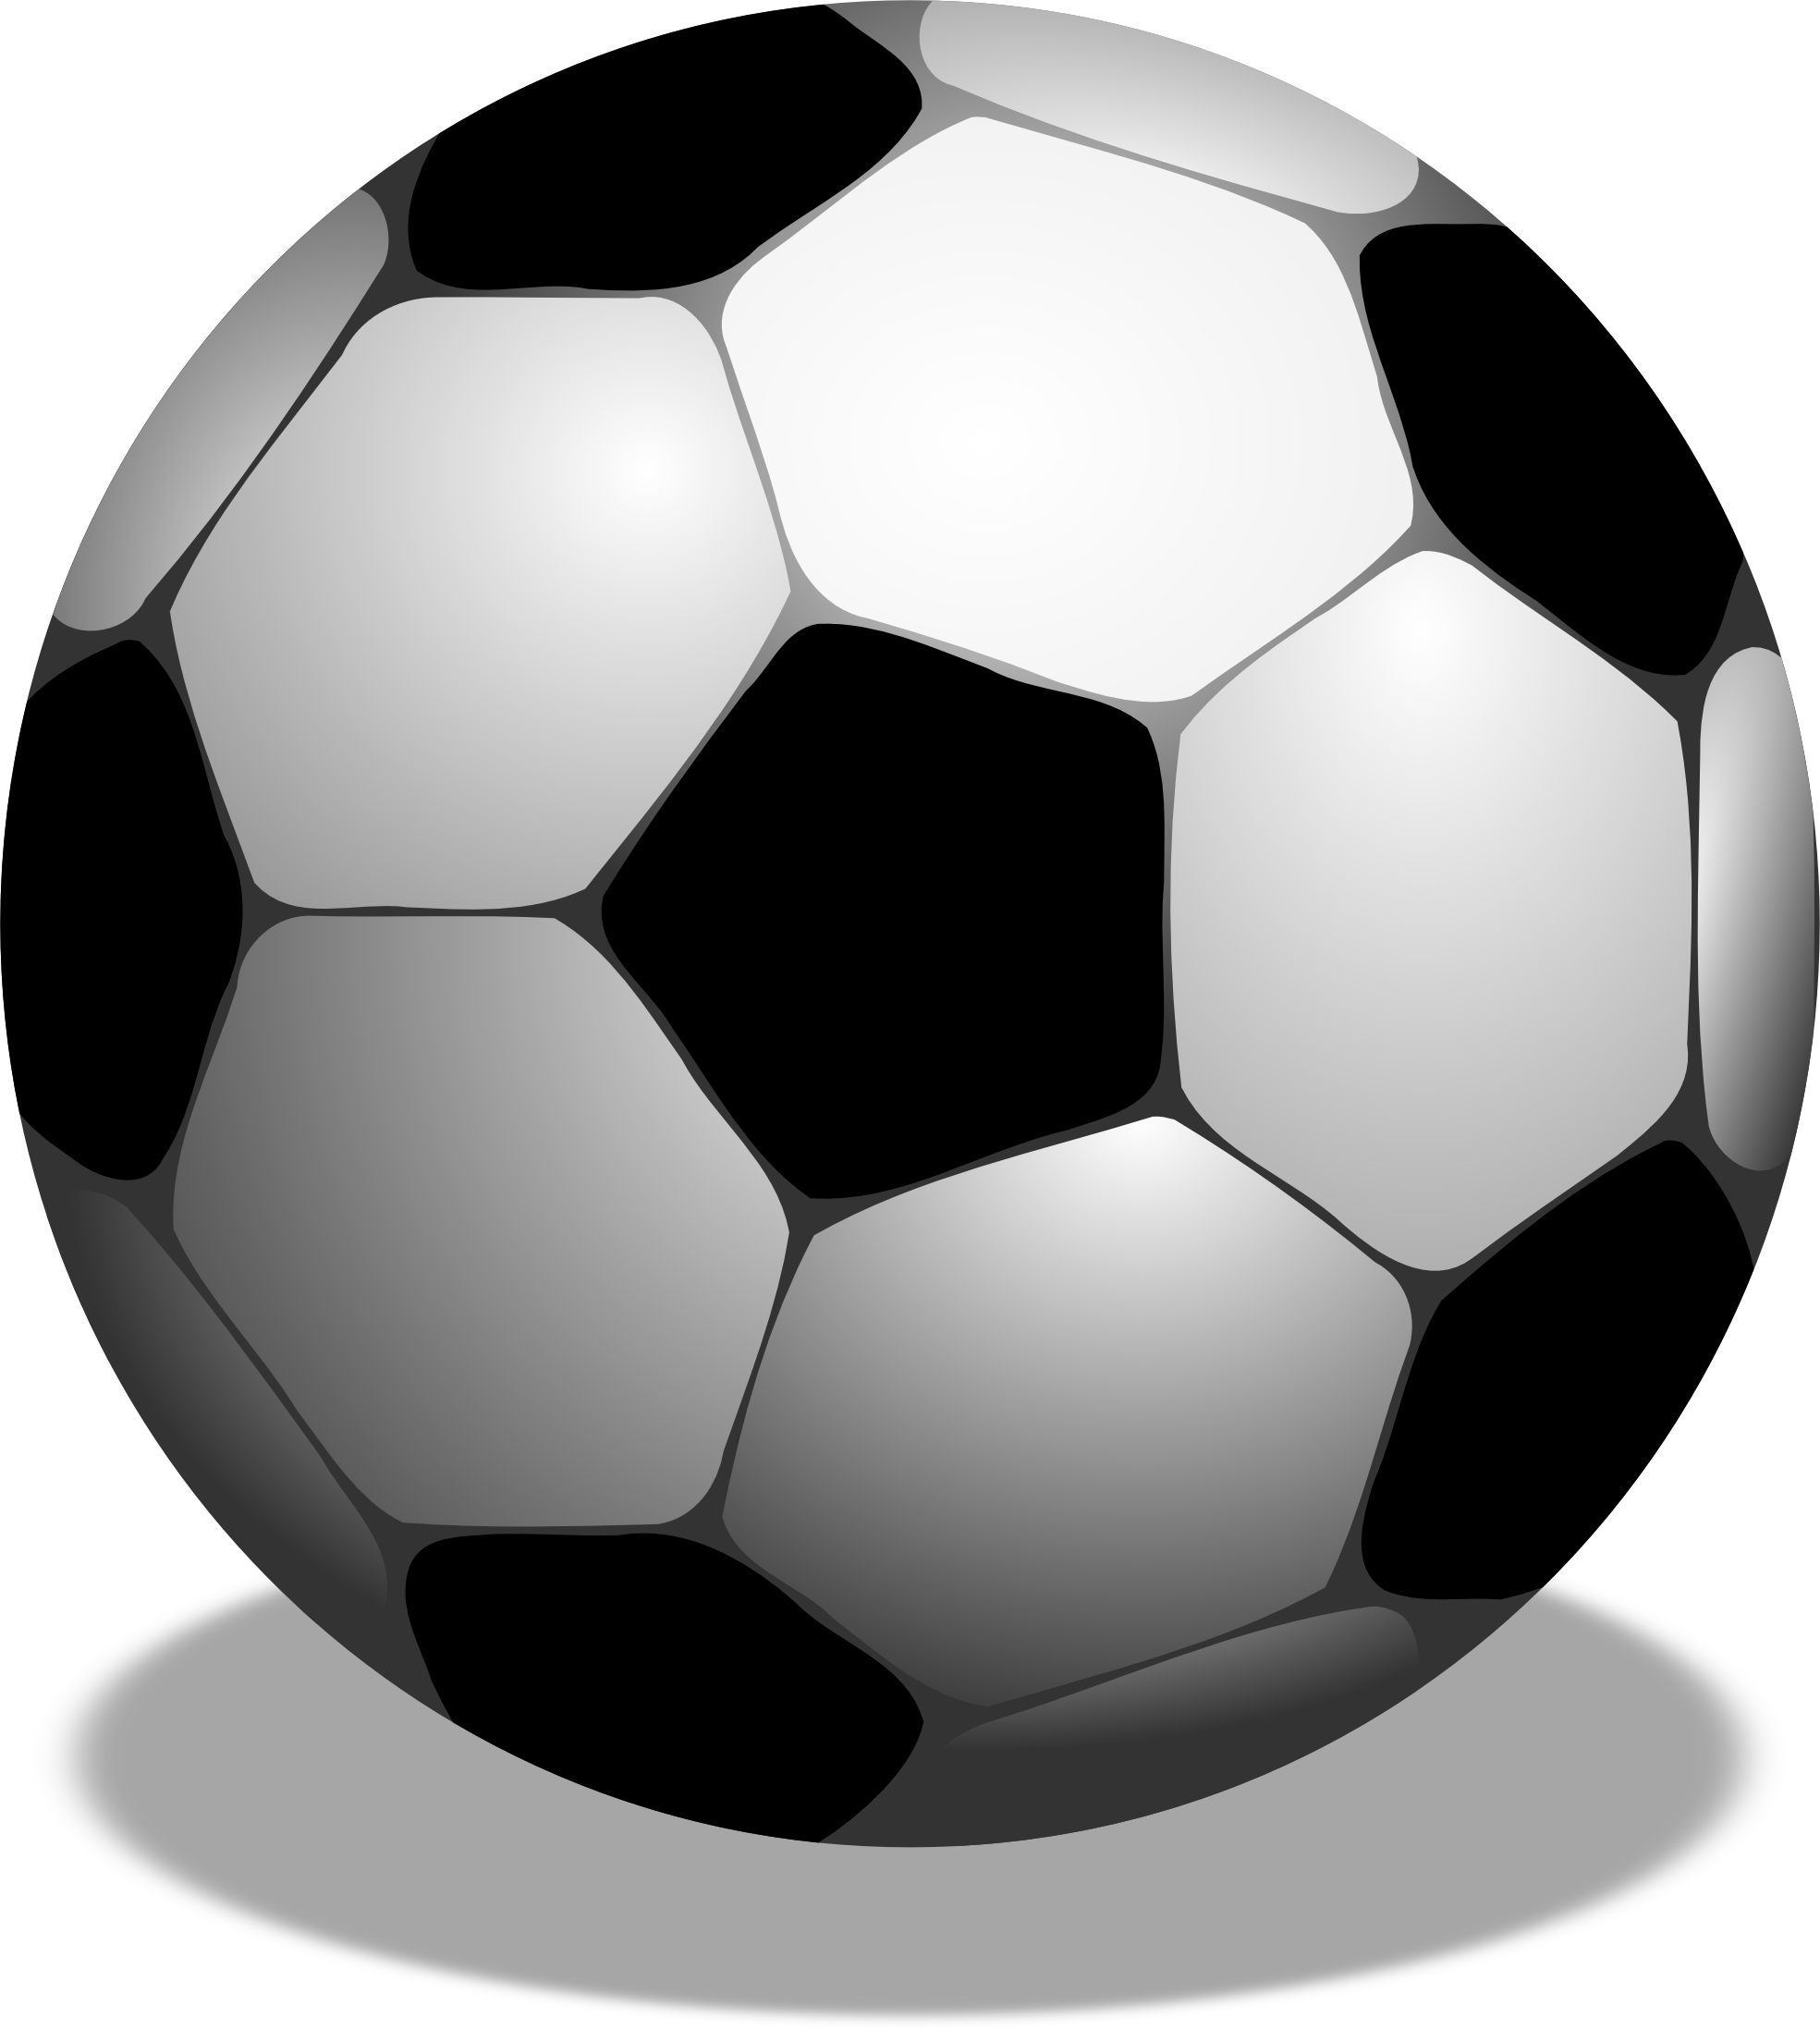 Football png image. Soccer ball transparent pictures